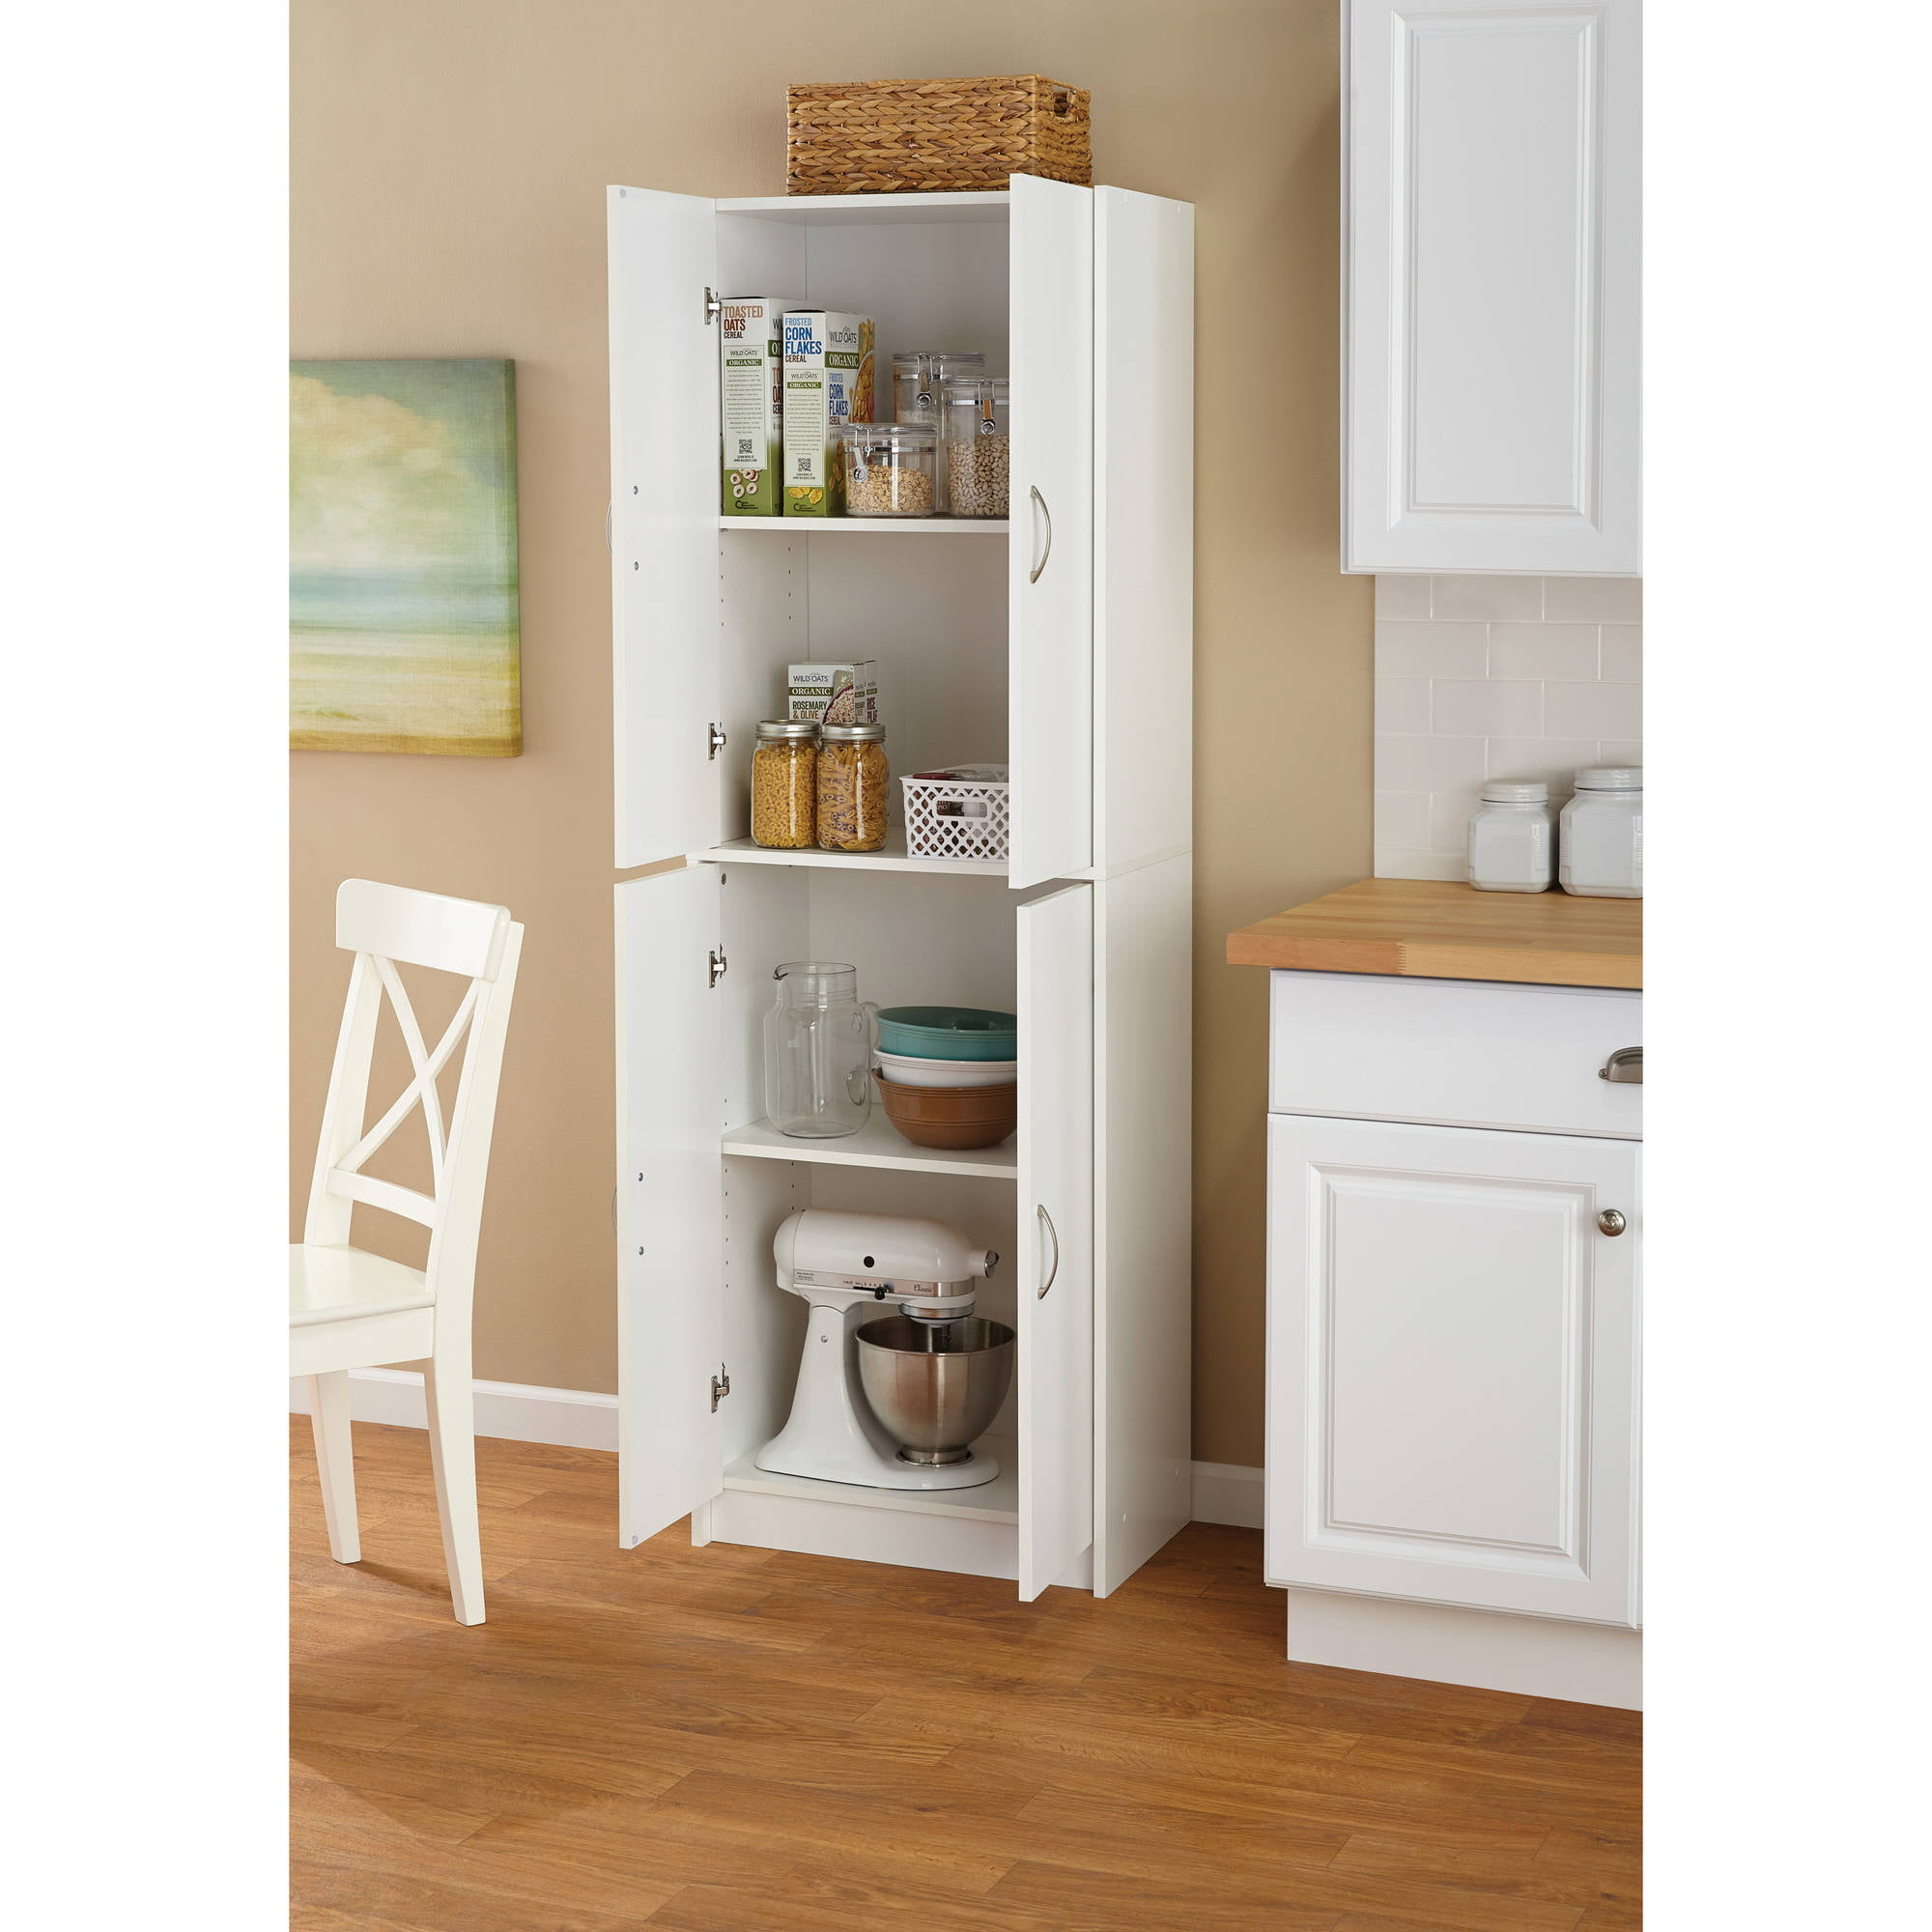 Tall storage cabinet kitchen cupboard pantry food storage organizer shelf wood ebay - Bathroom pantry cabinets ...